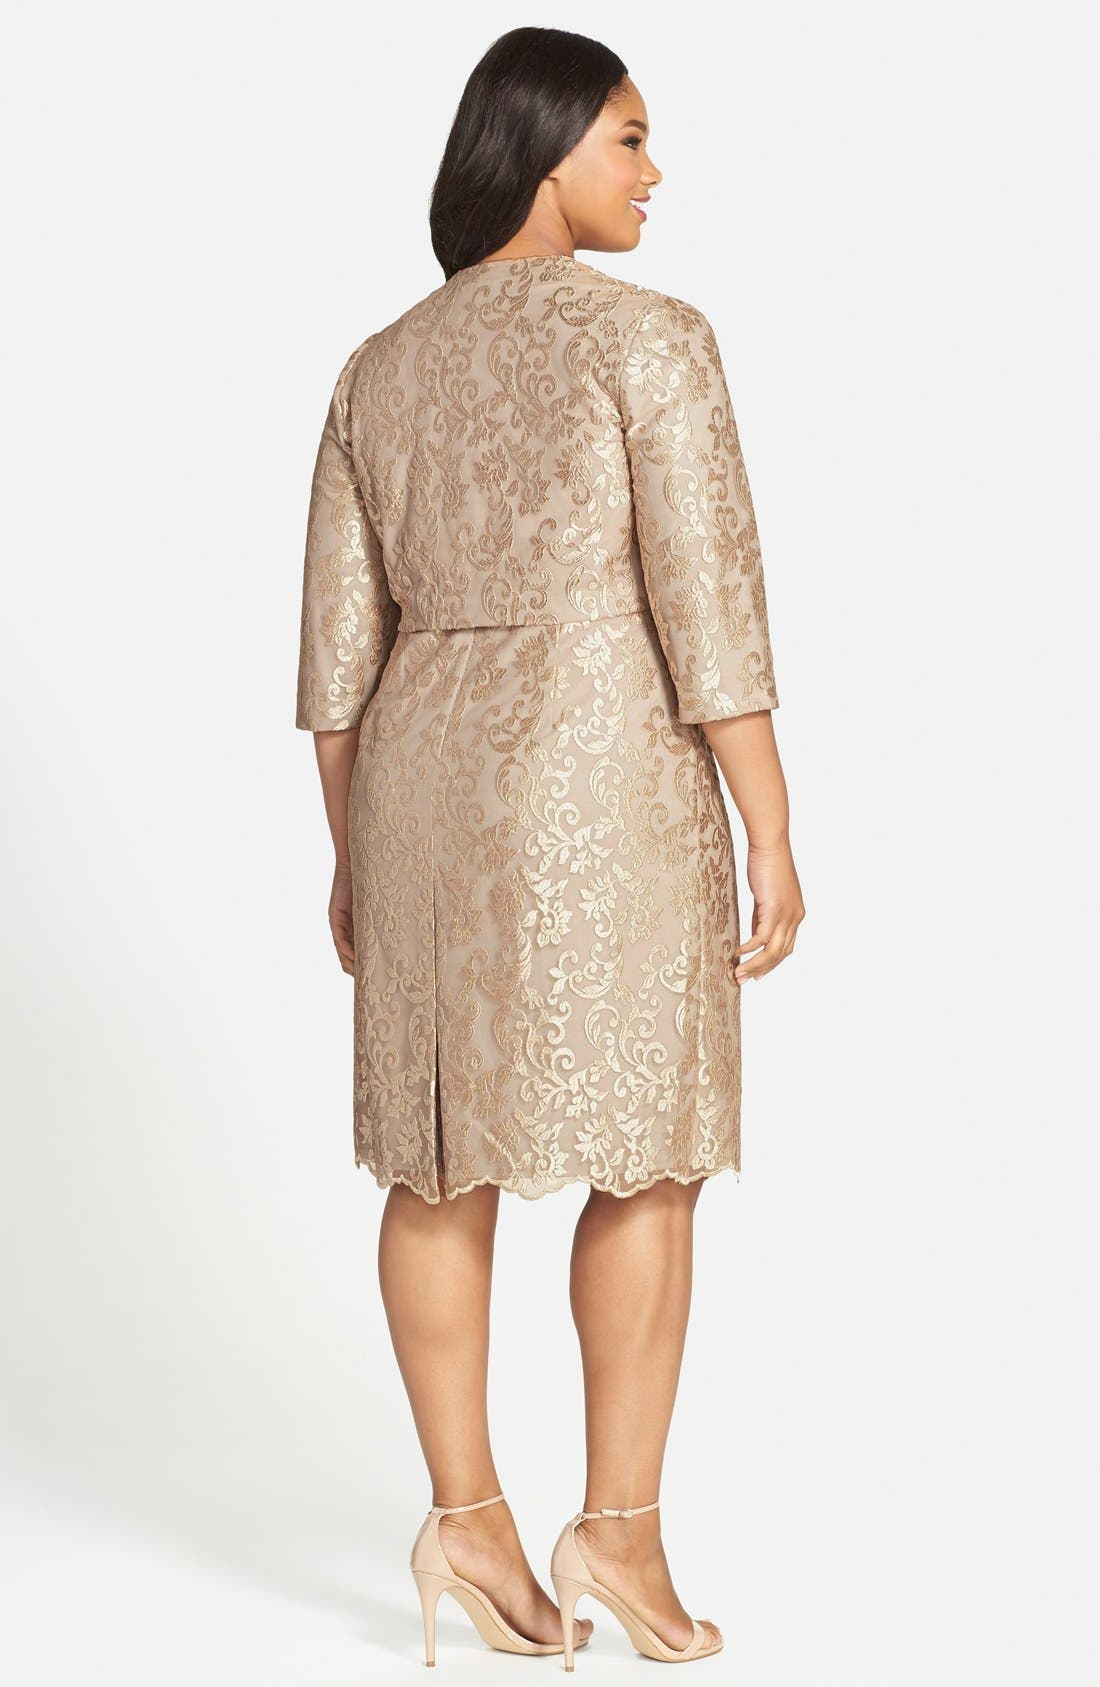 Embroidered Cocktail Dress with Embellished Bolero Jacket,                             Alternate thumbnail 2, color,                             250